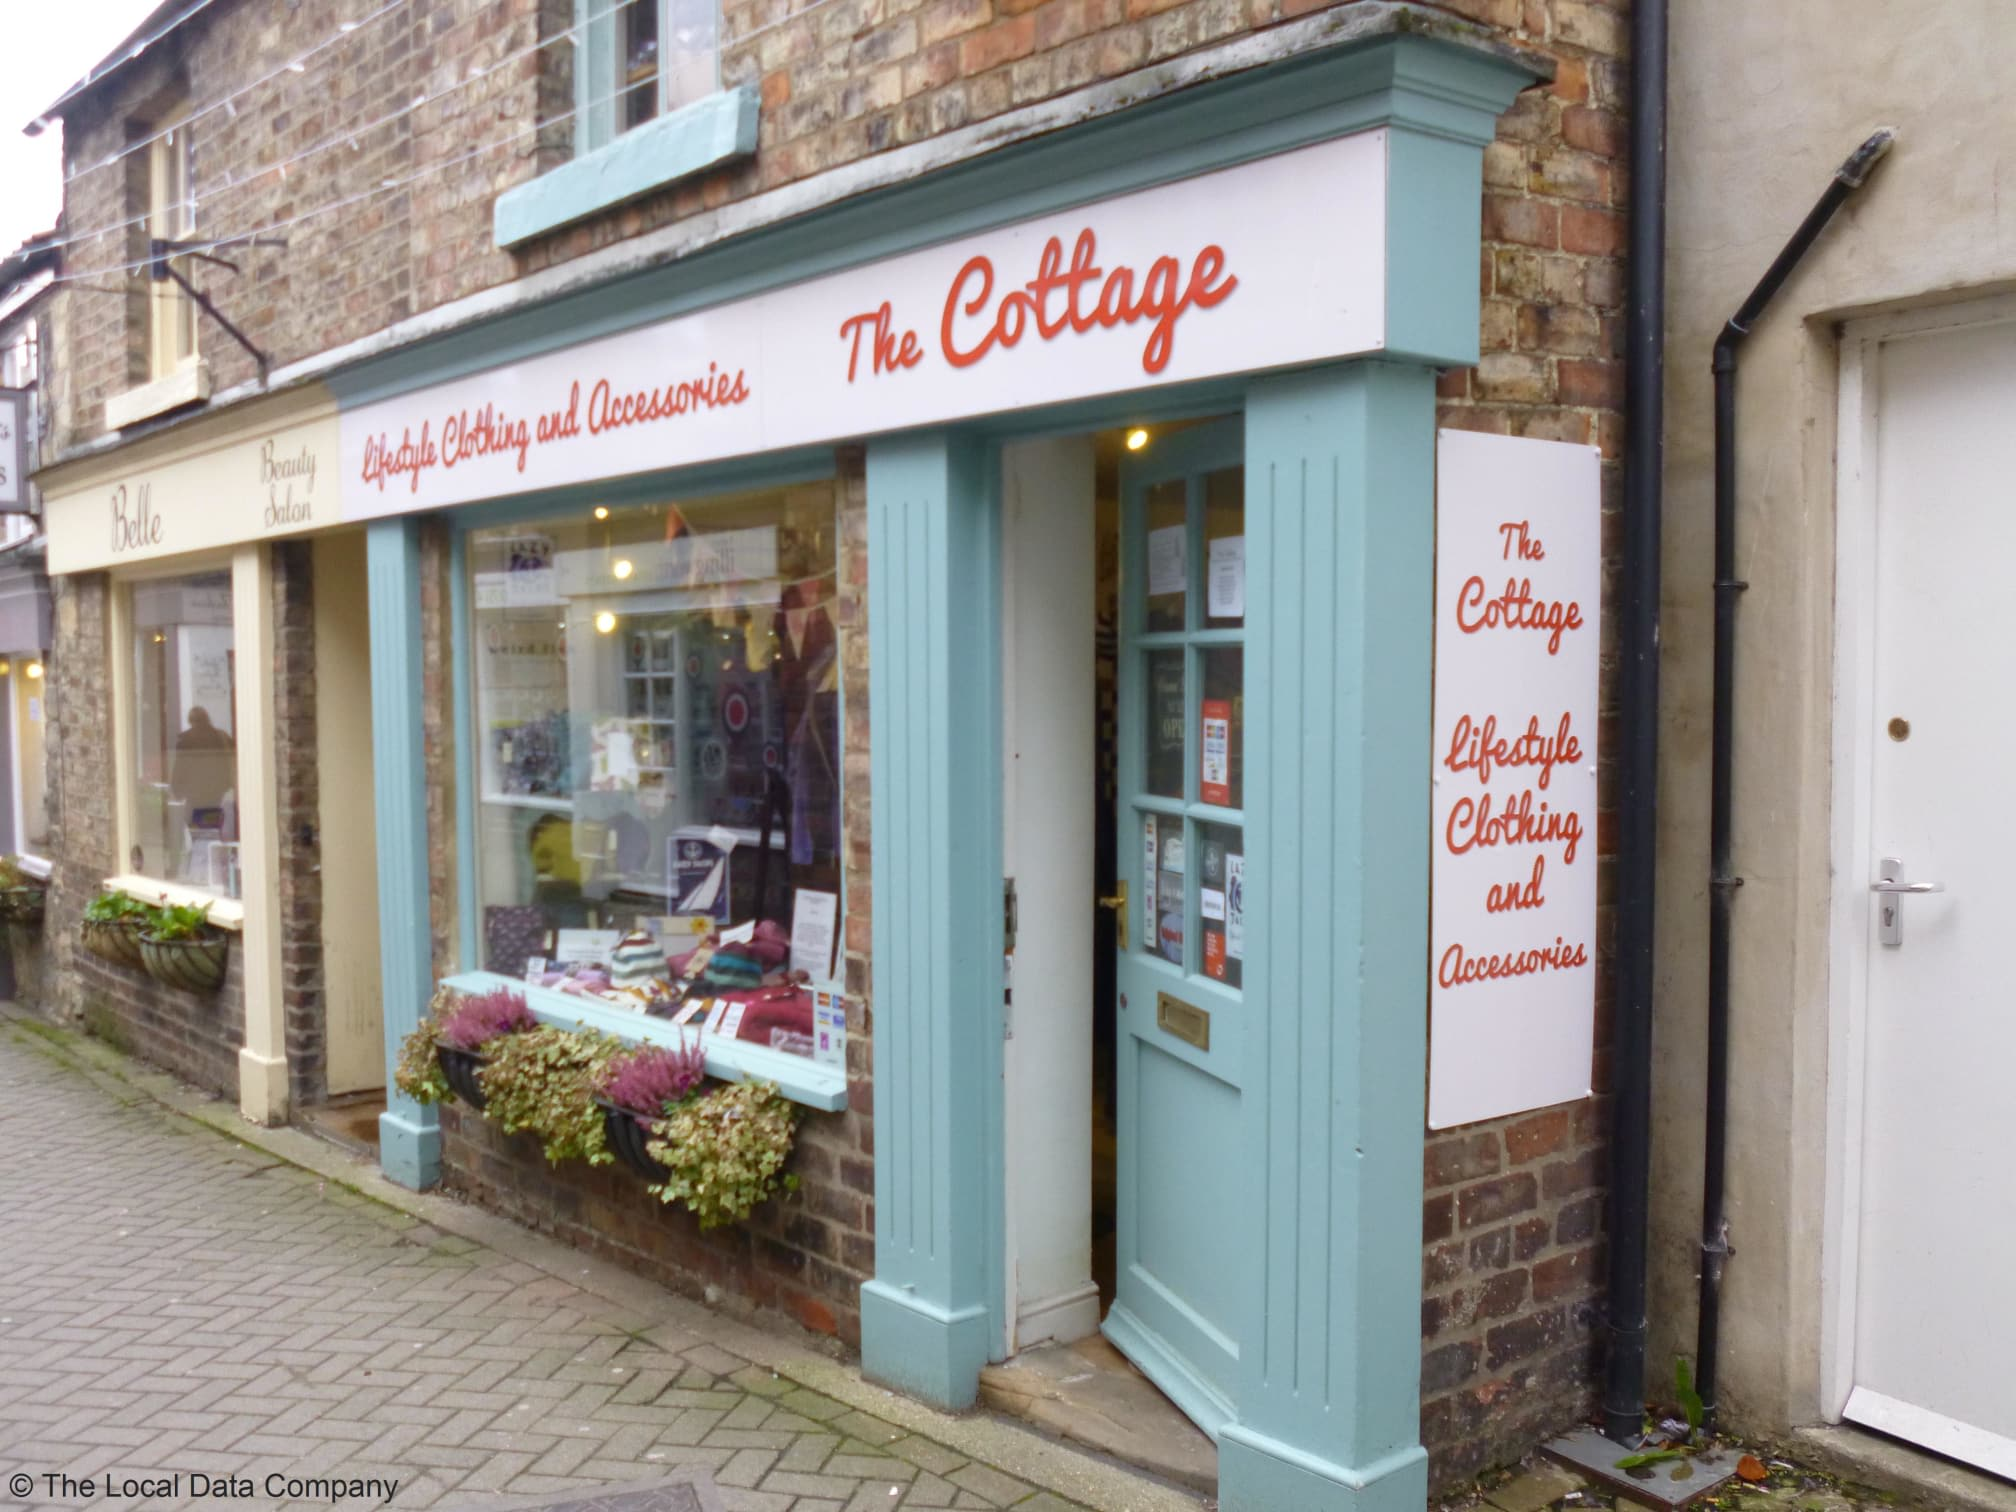 The Cottage Lifestyle Clothing & Accessories | 26A Market Place Champleys Mews, Pickering YO18 7AE | +44 1751 476332